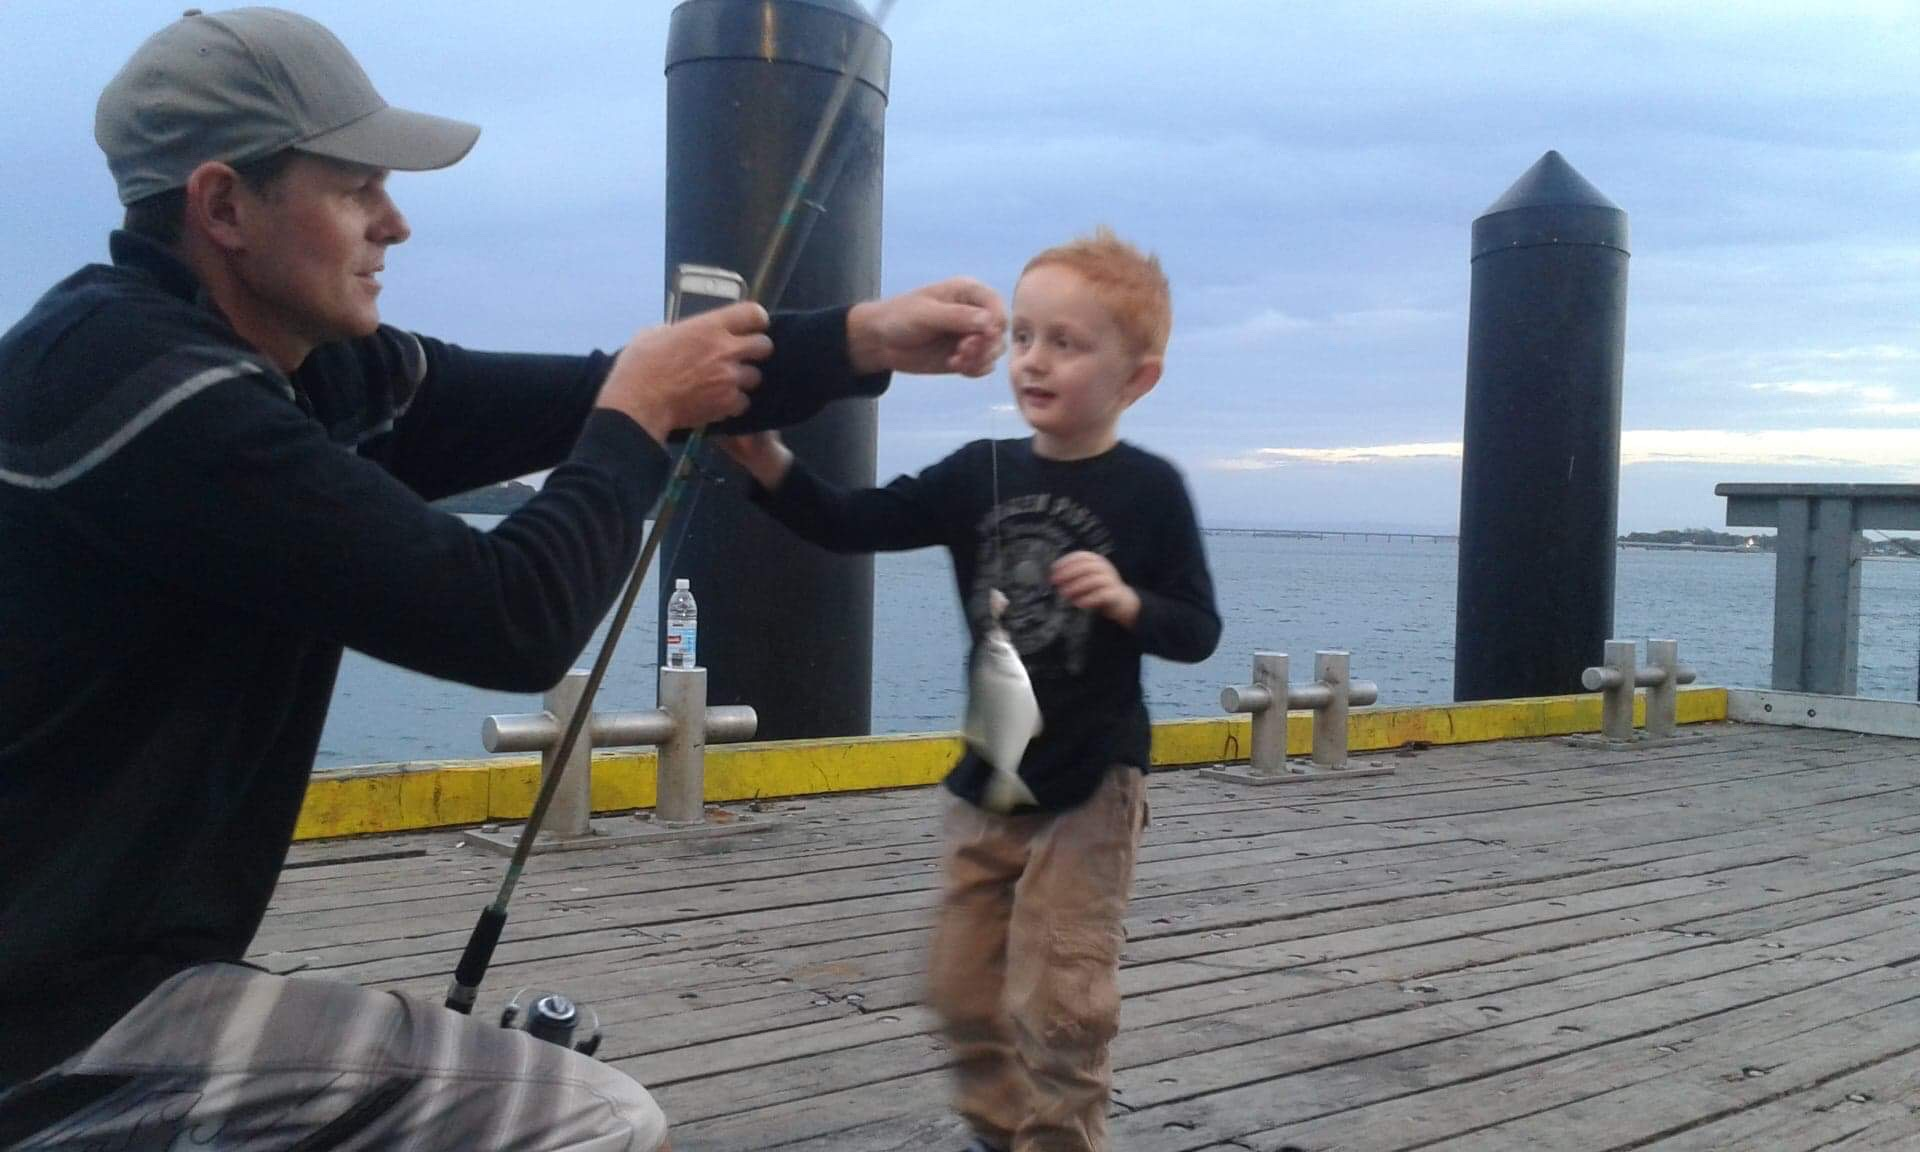 Our biggest little legend has loved fishing from a young age!